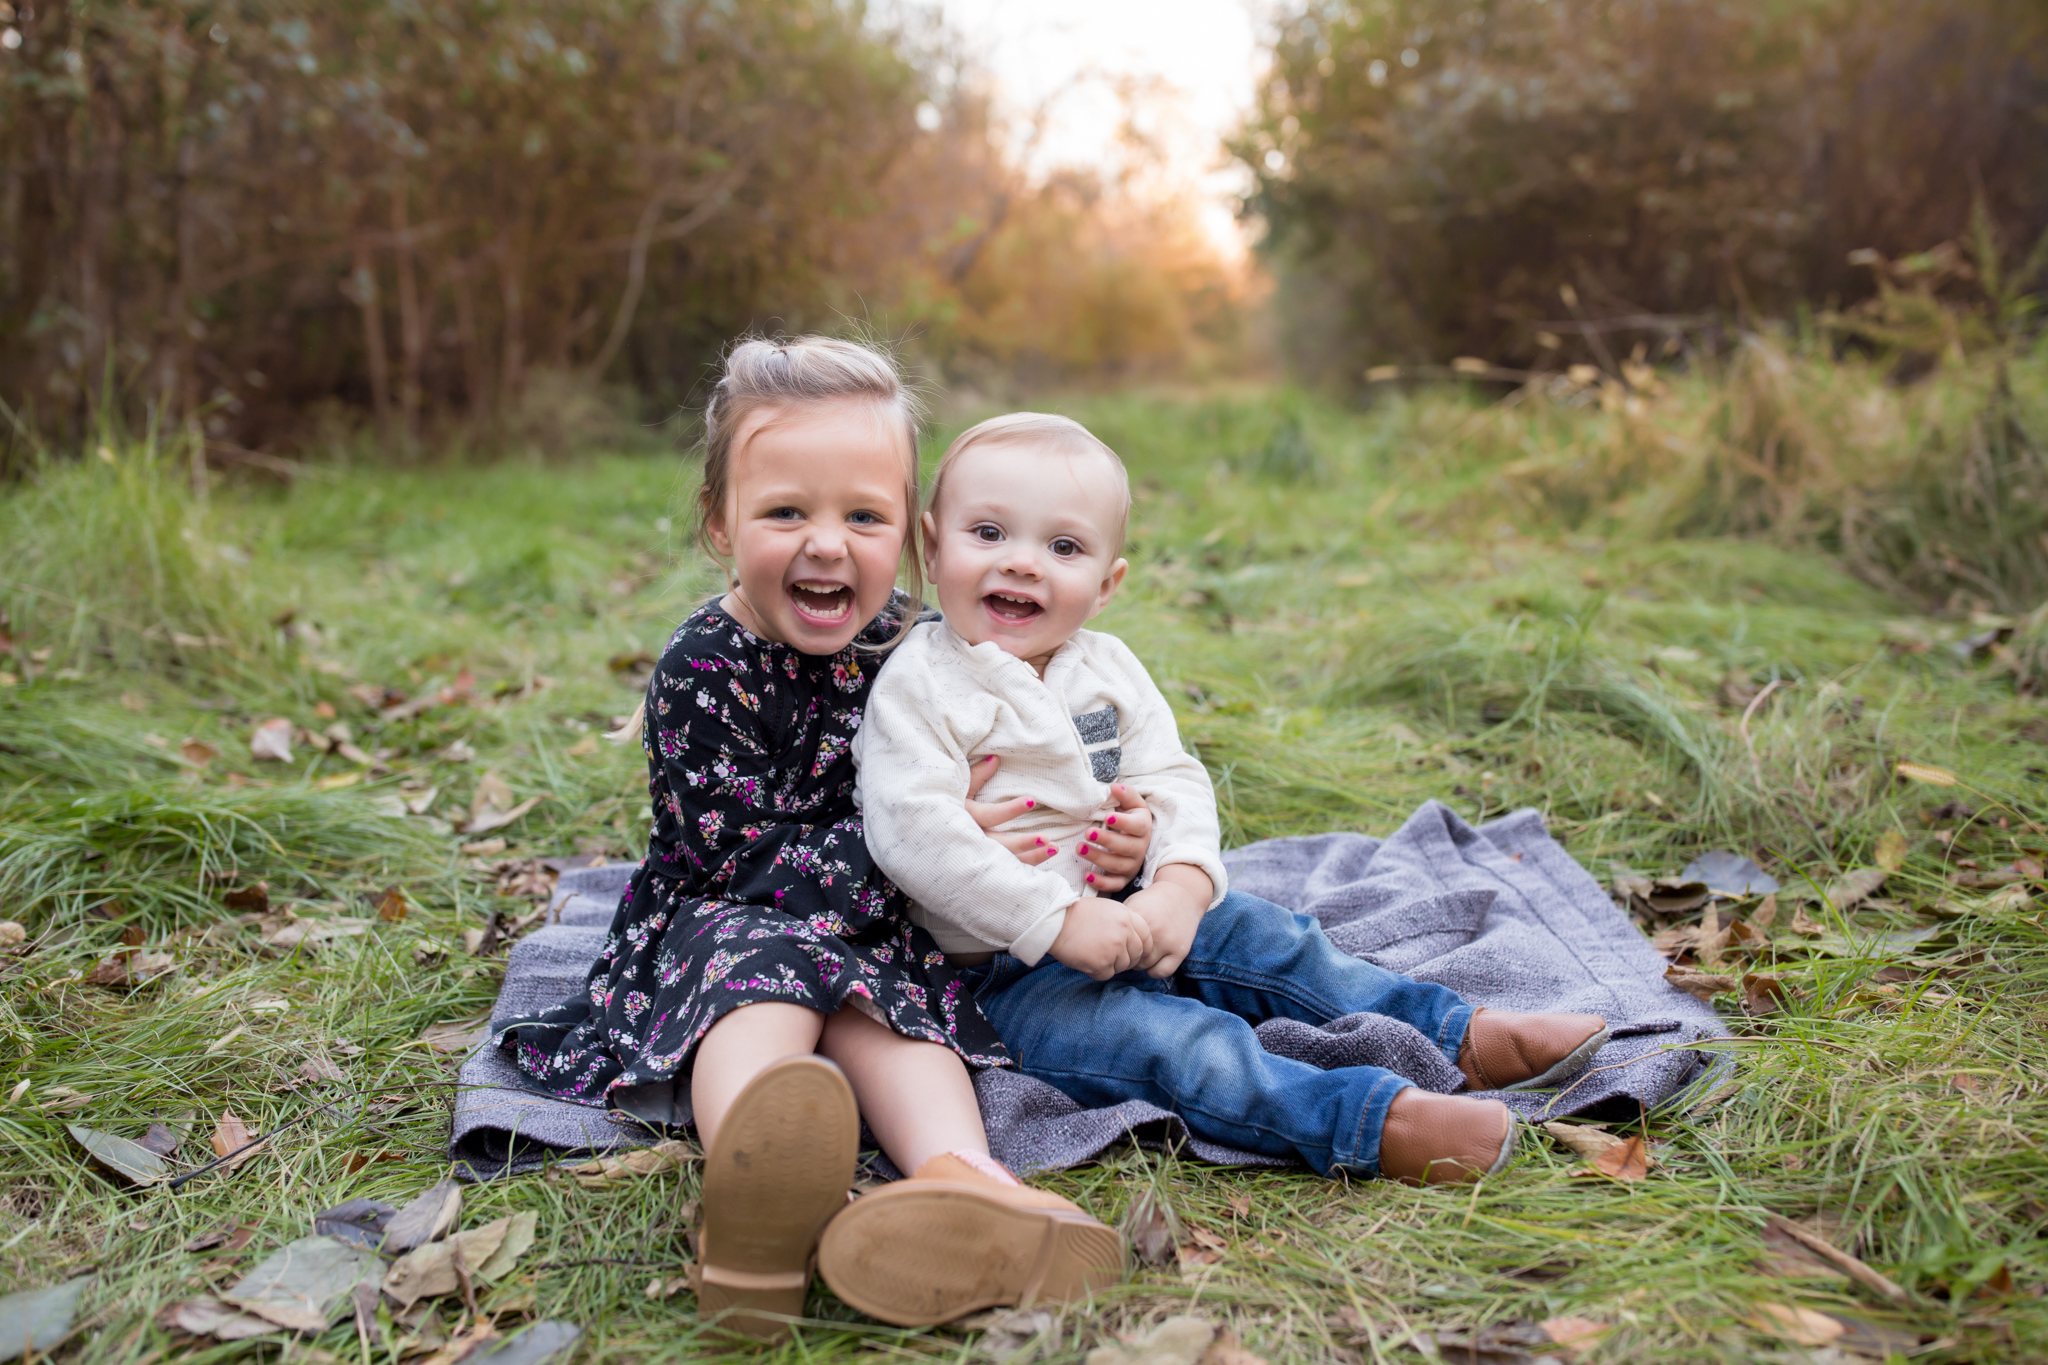 Hailey Family Fall Session, 2 kinds, family poses with young kids, Cara Peterson Photography Rockford IL-12.jpg